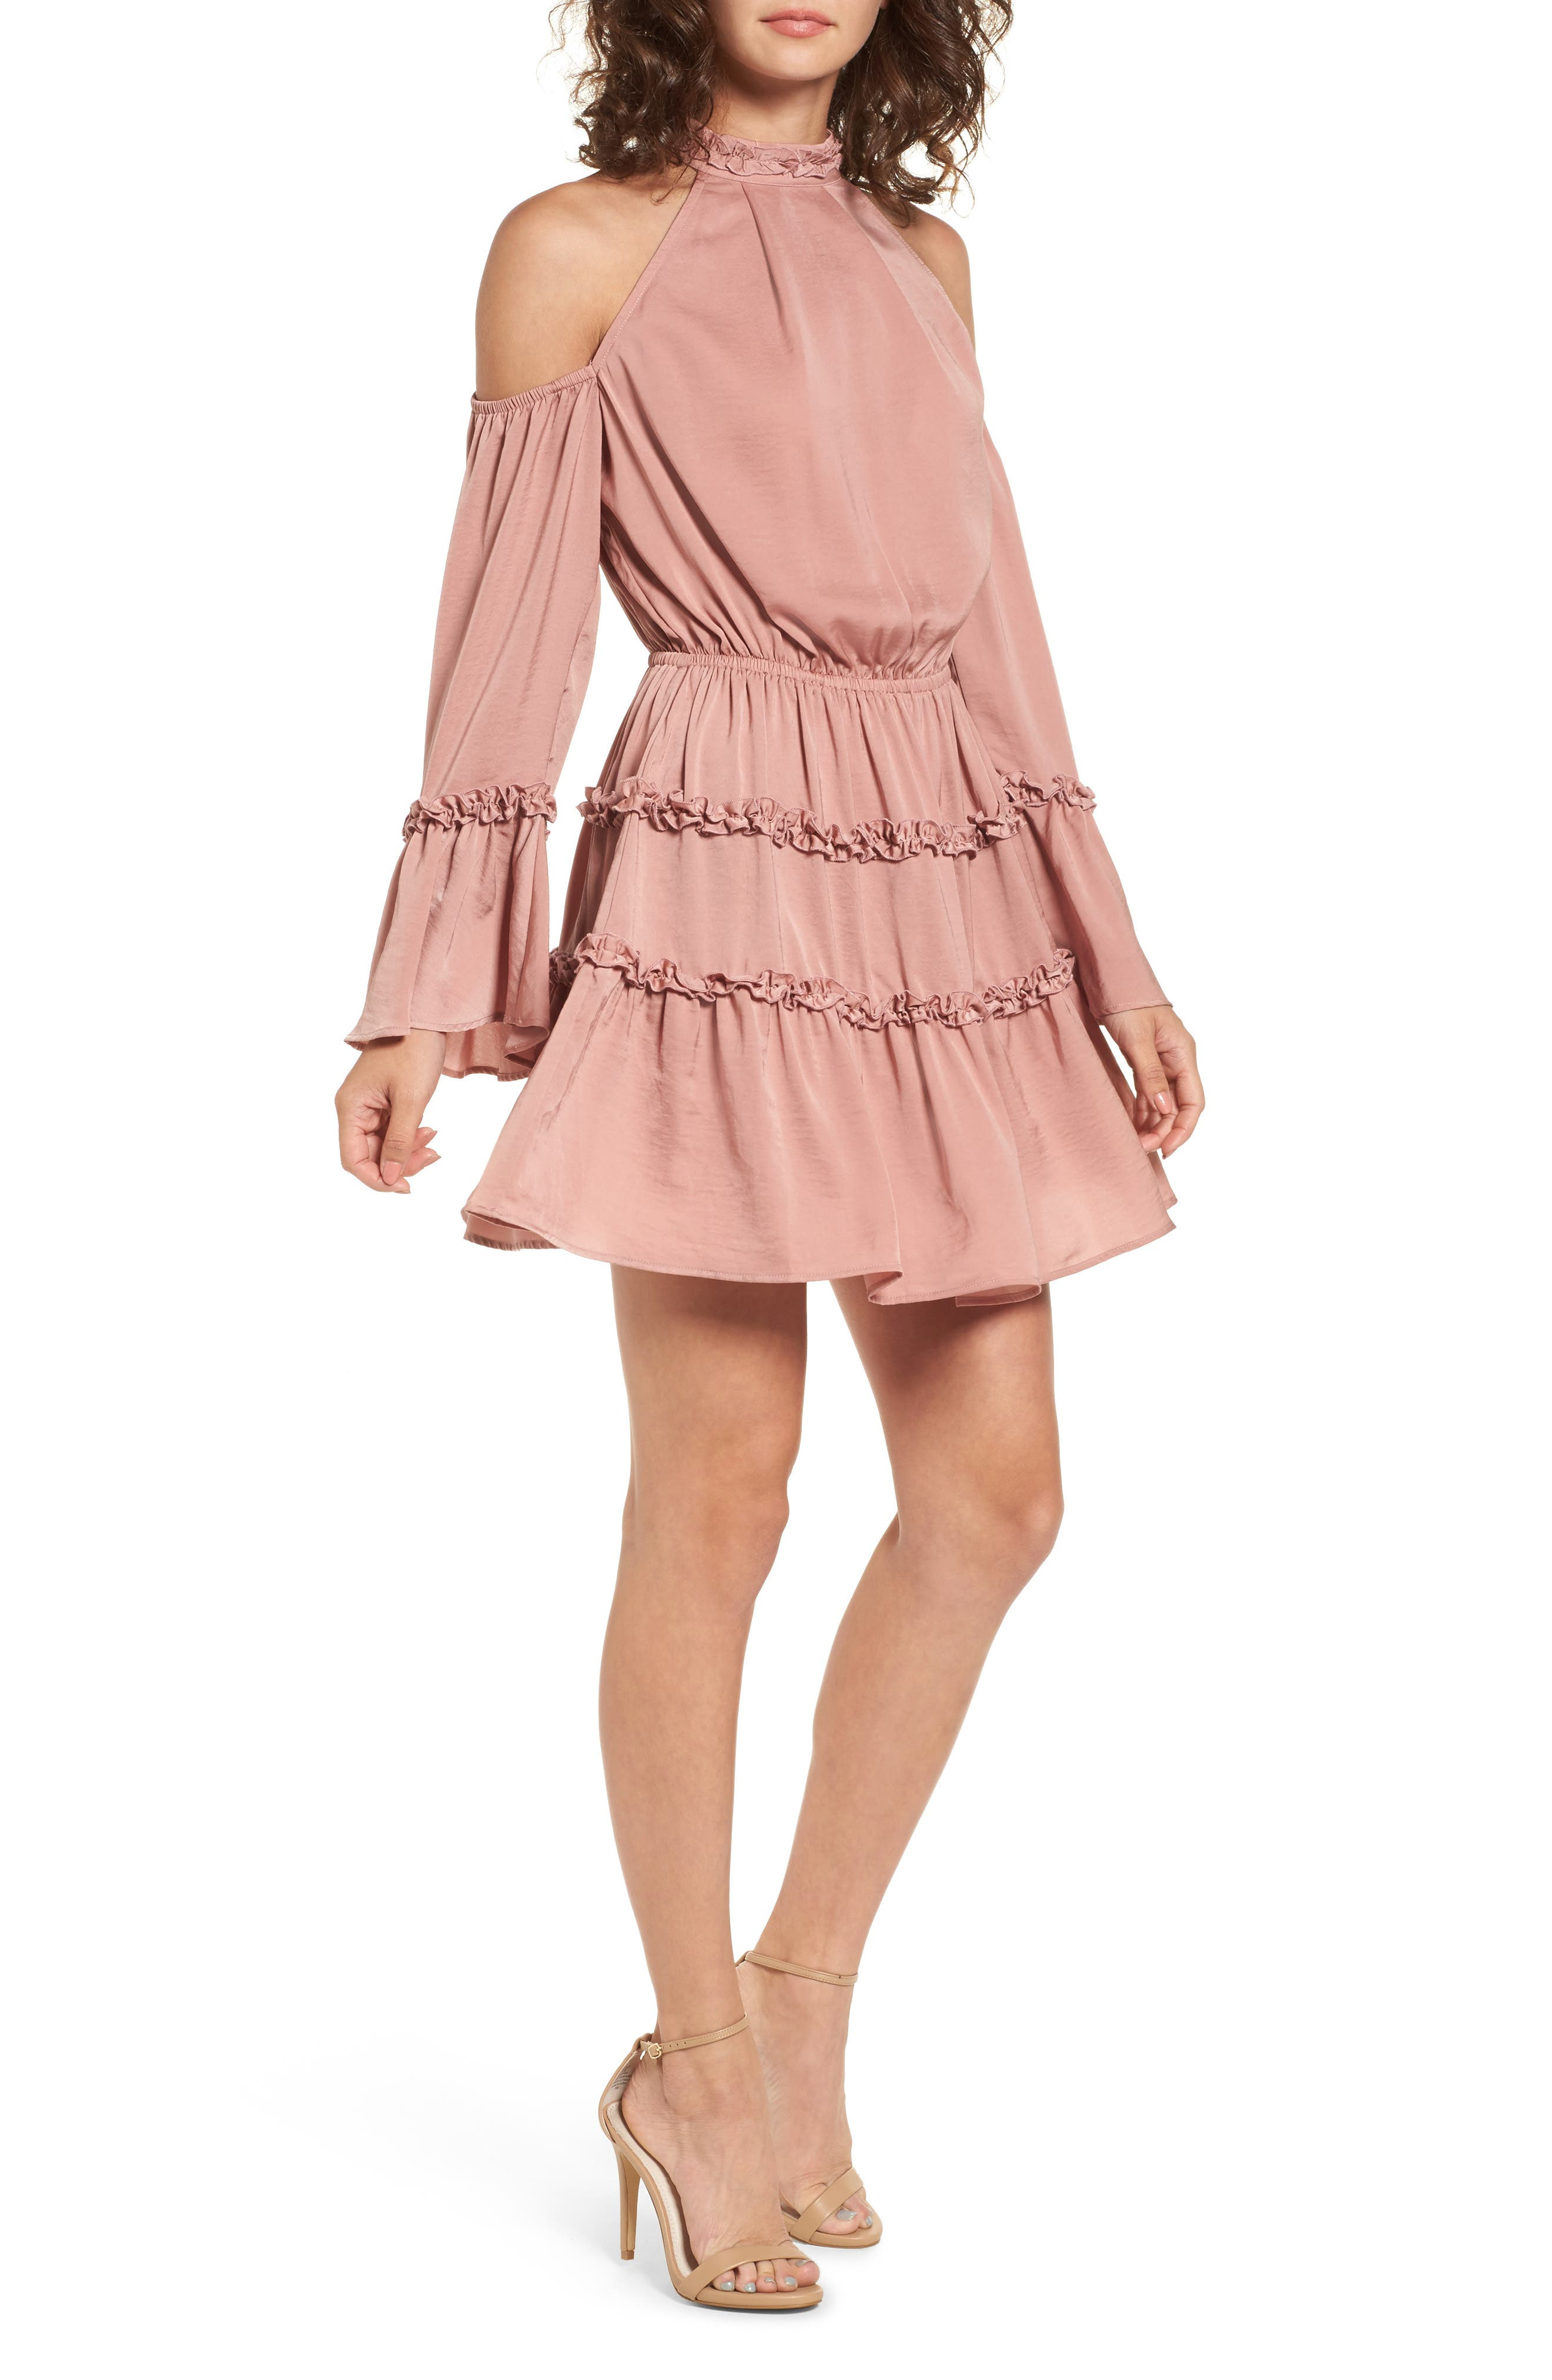 The Fifth Label Banjo Ruffle Cold Shoulder Dress